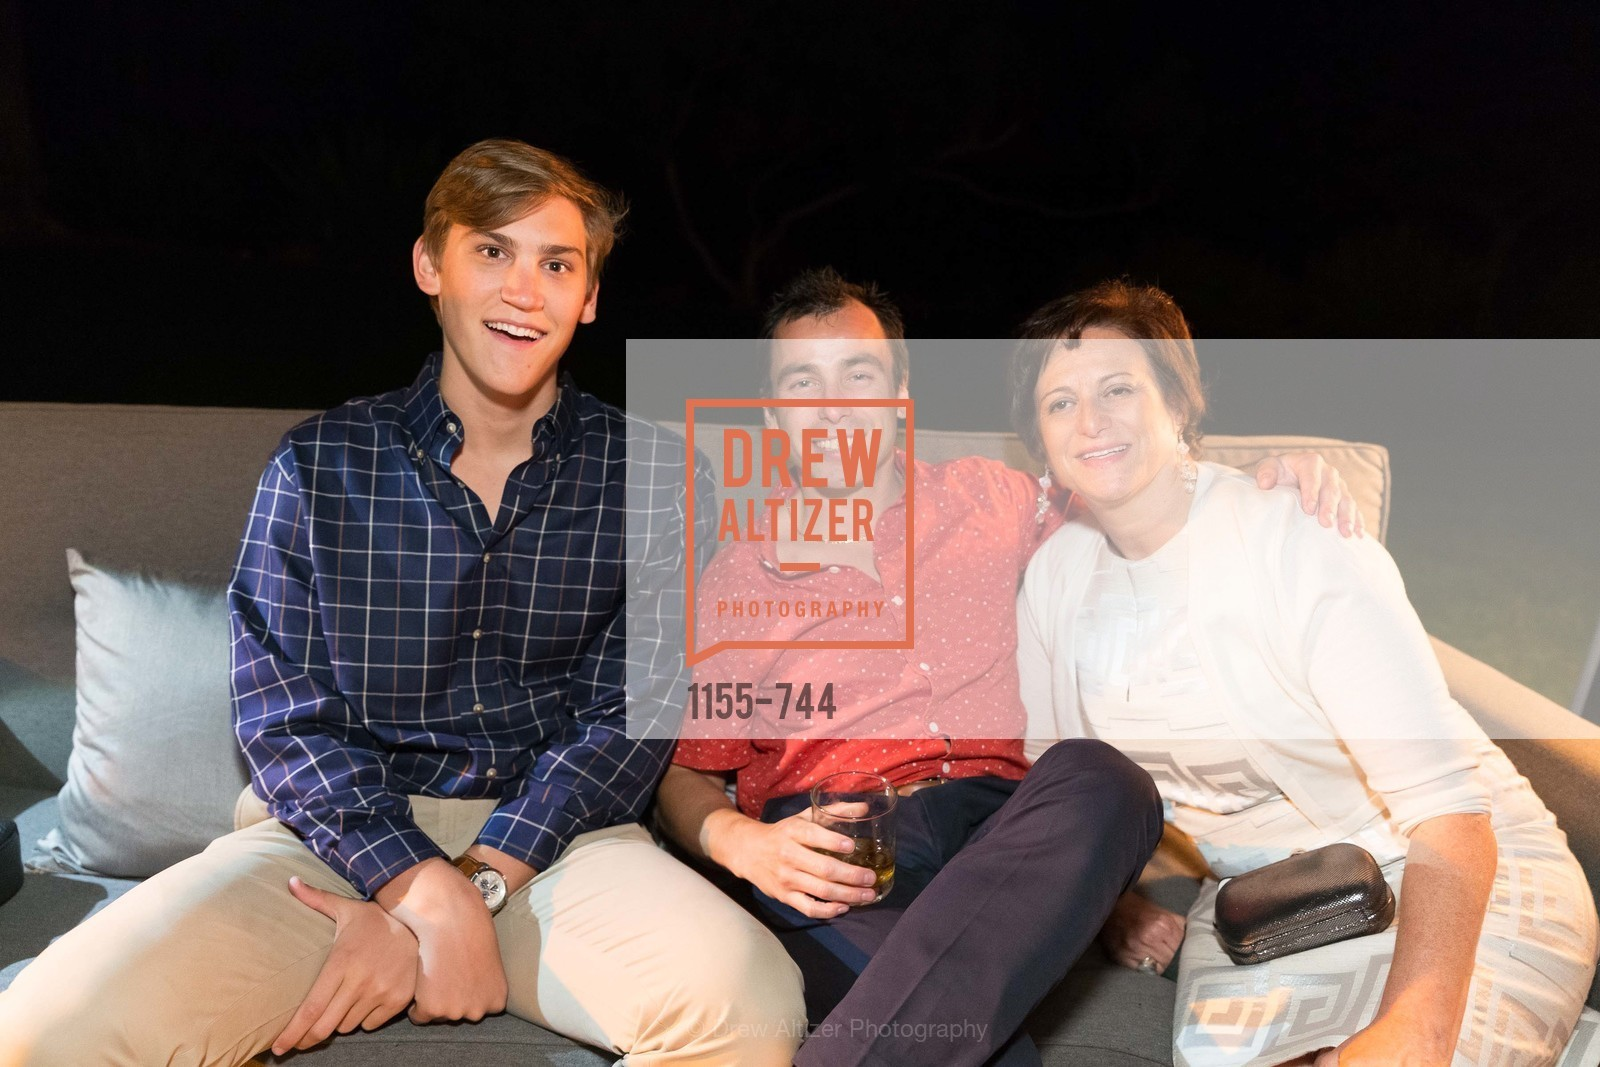 Isaac Wyatt, Nicholas Banducci, Liz Heller, Celebration of Launch of SHYP in Los Angeles, US, May 20th, 2015,Drew Altizer, Drew Altizer Photography, full-service agency, private events, San Francisco photographer, photographer california